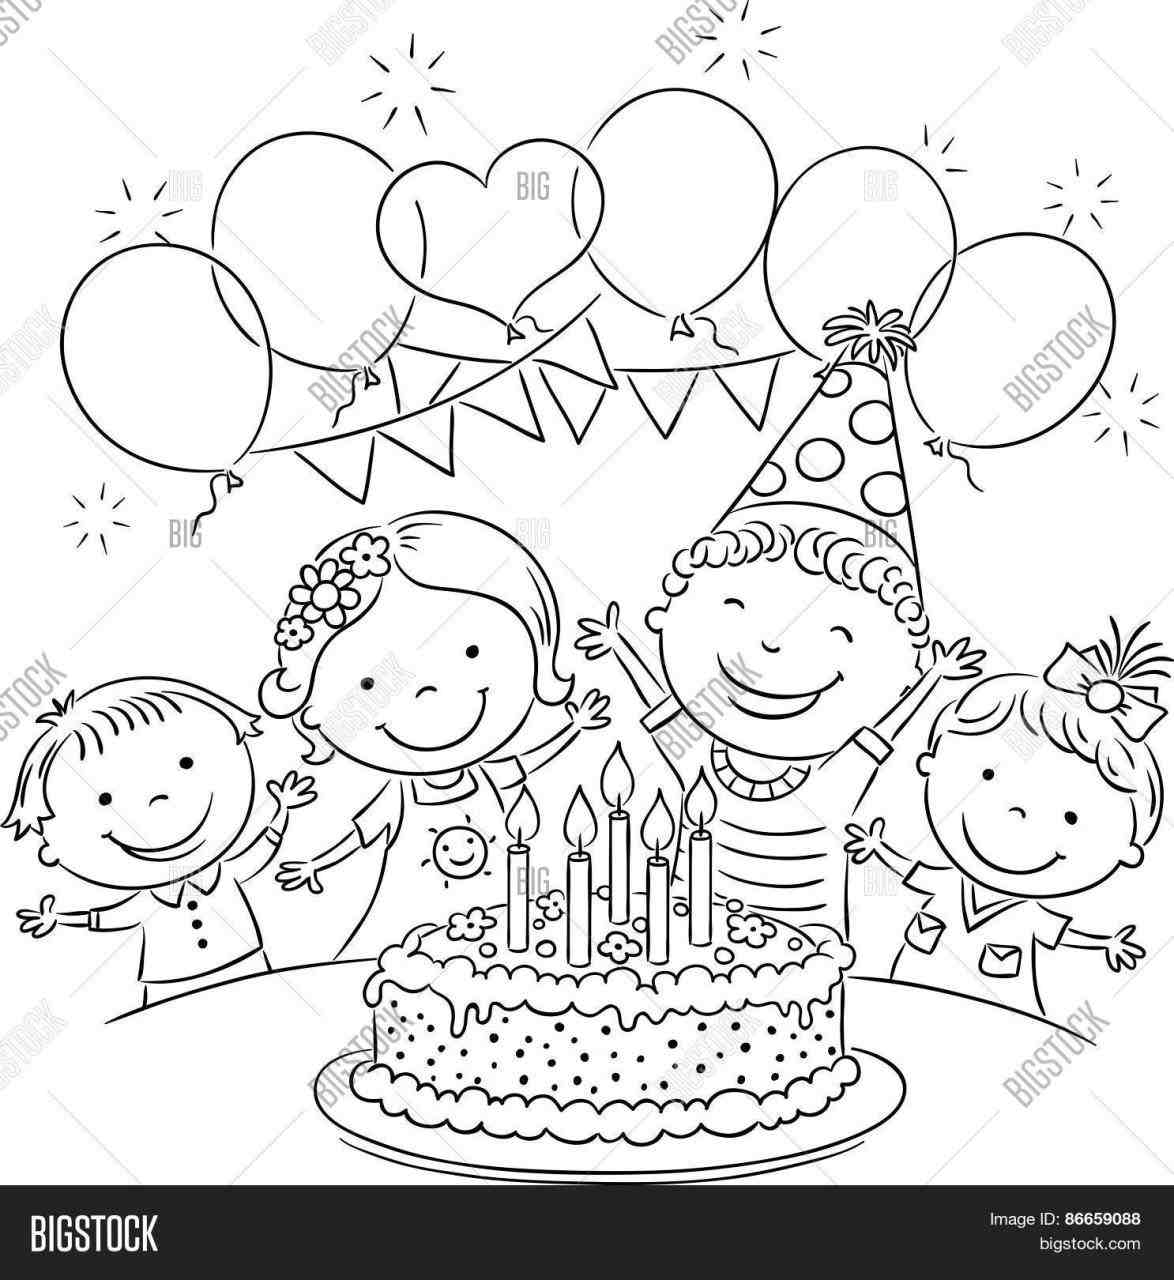 birthday party drawing easy ; cyprus-park-as-puppy-ruins-youtube-drawn-birthday-pencil-and-color-drawn-party-decoration-drawing-birthday-pencil-and-in-color-easy-things-to